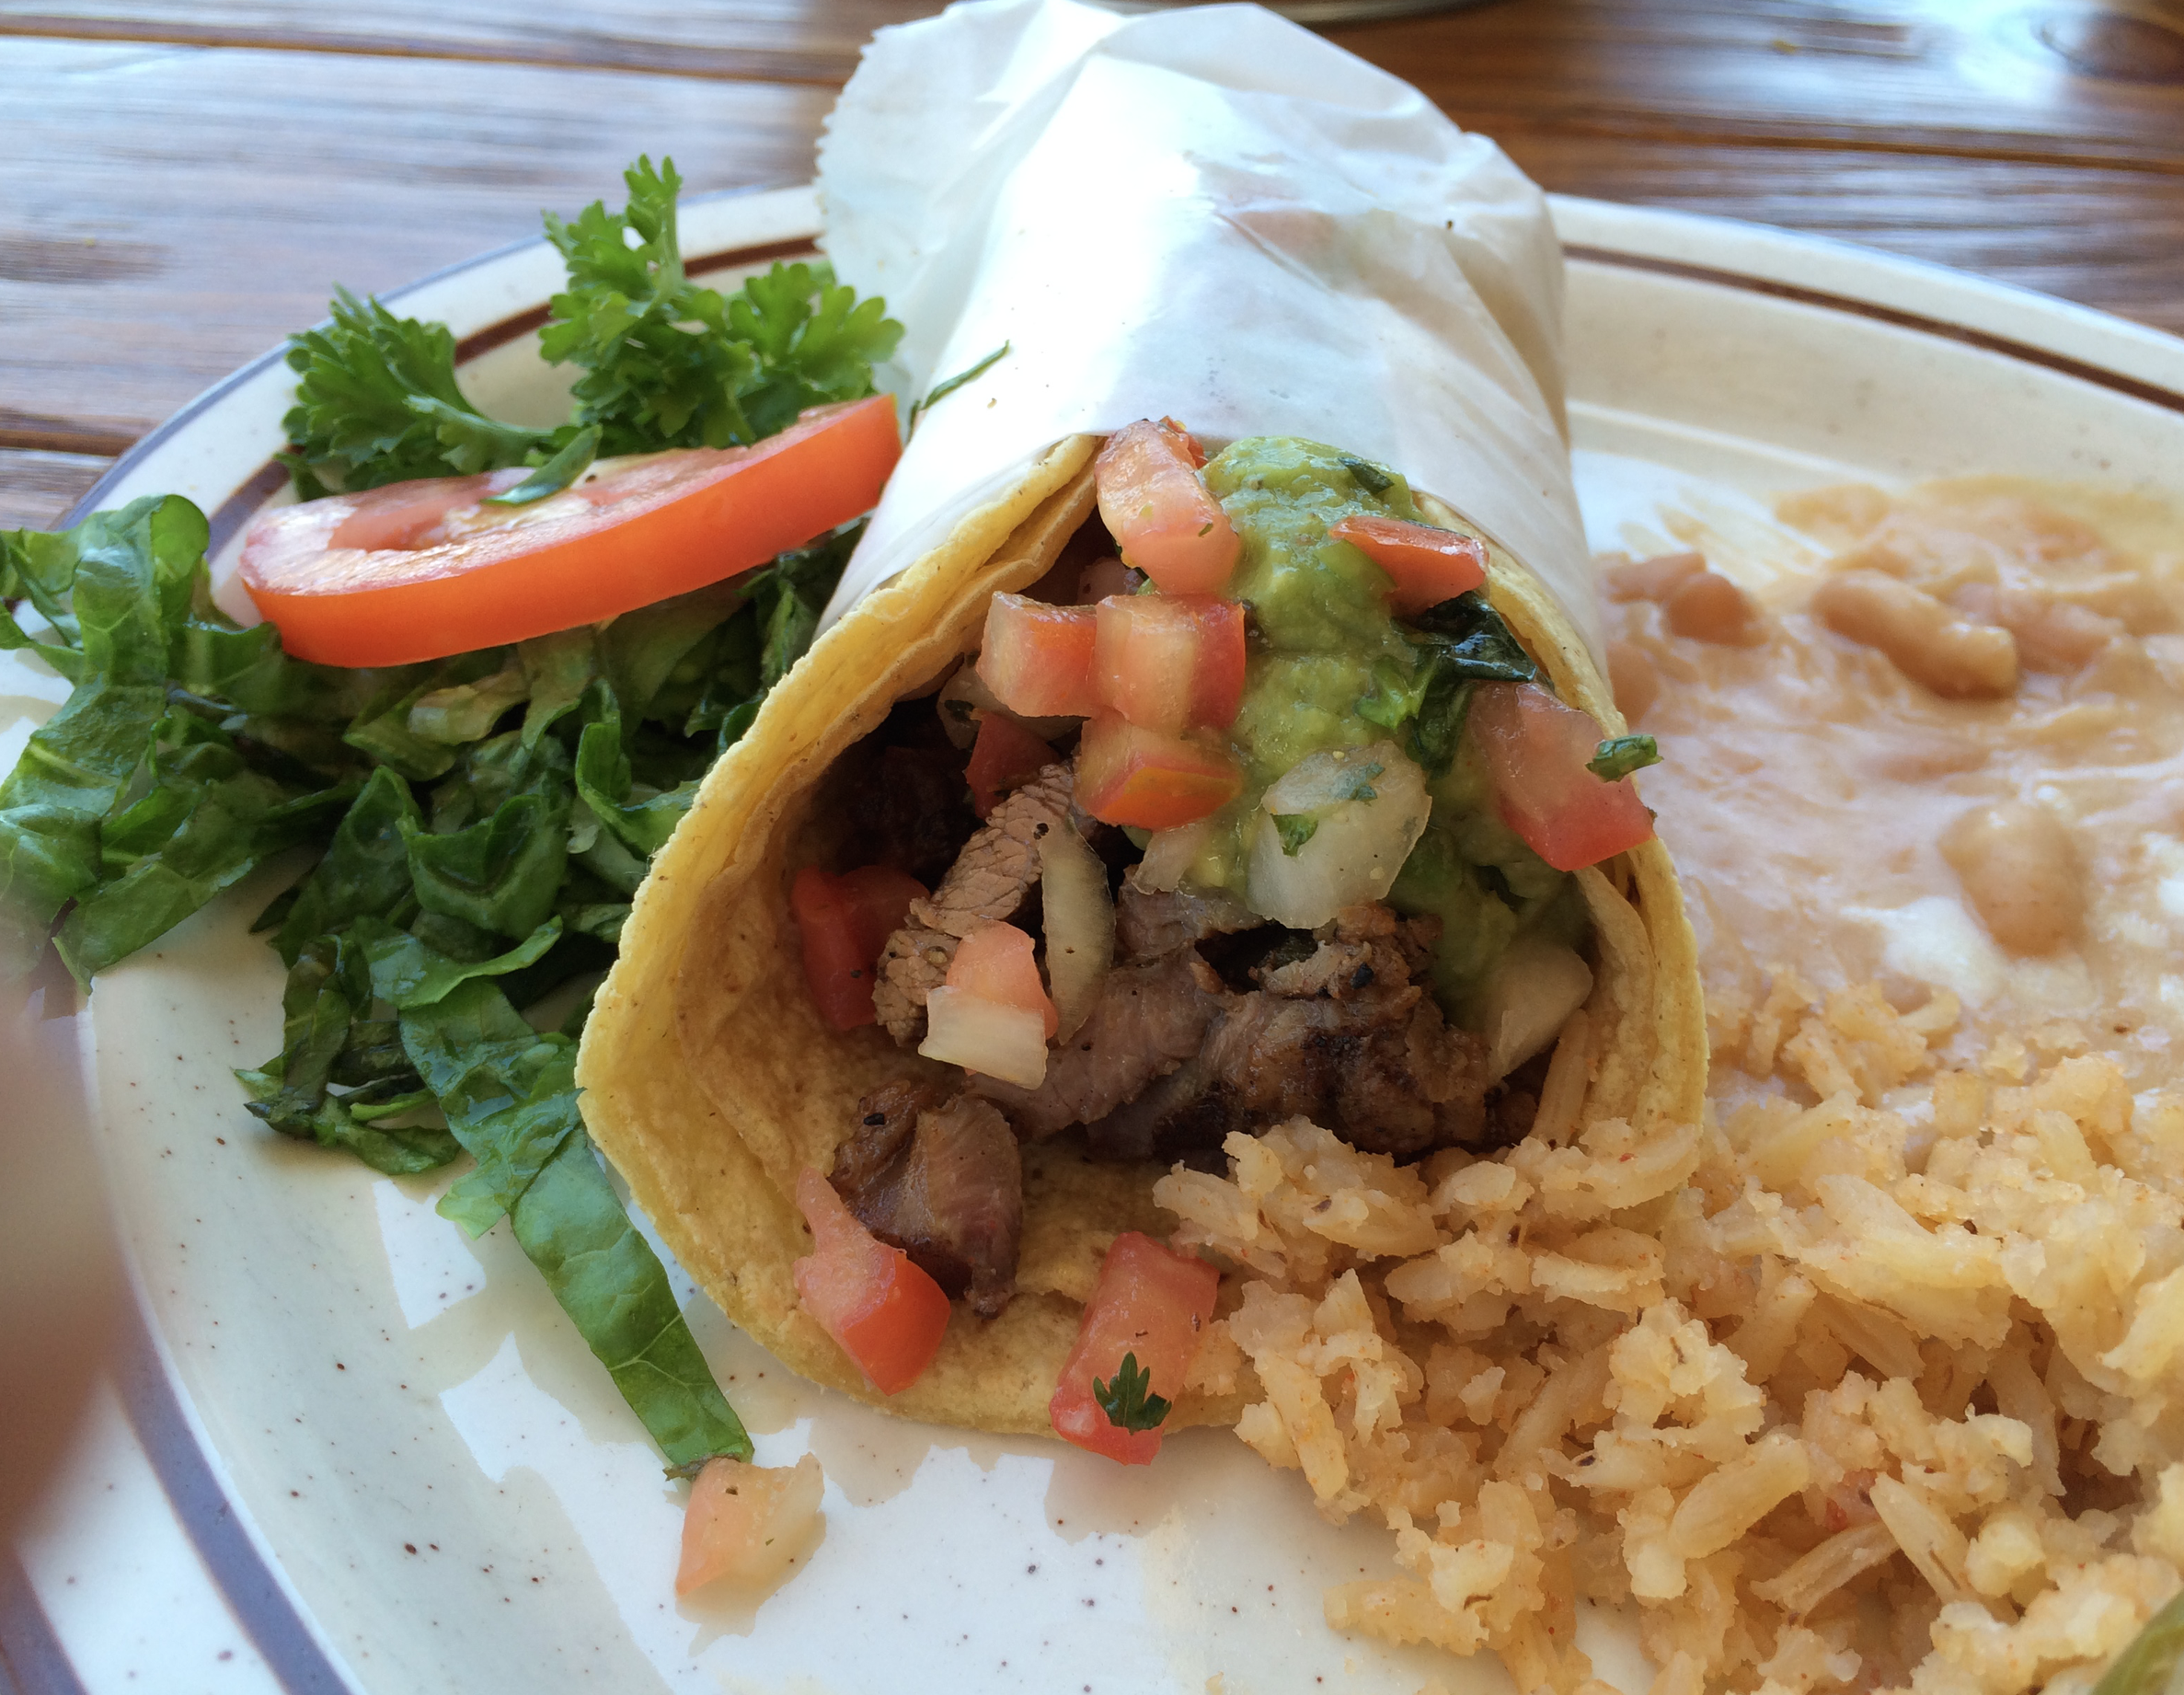 This is it! The Carne Asada taco at Alfonso's of La Jolla